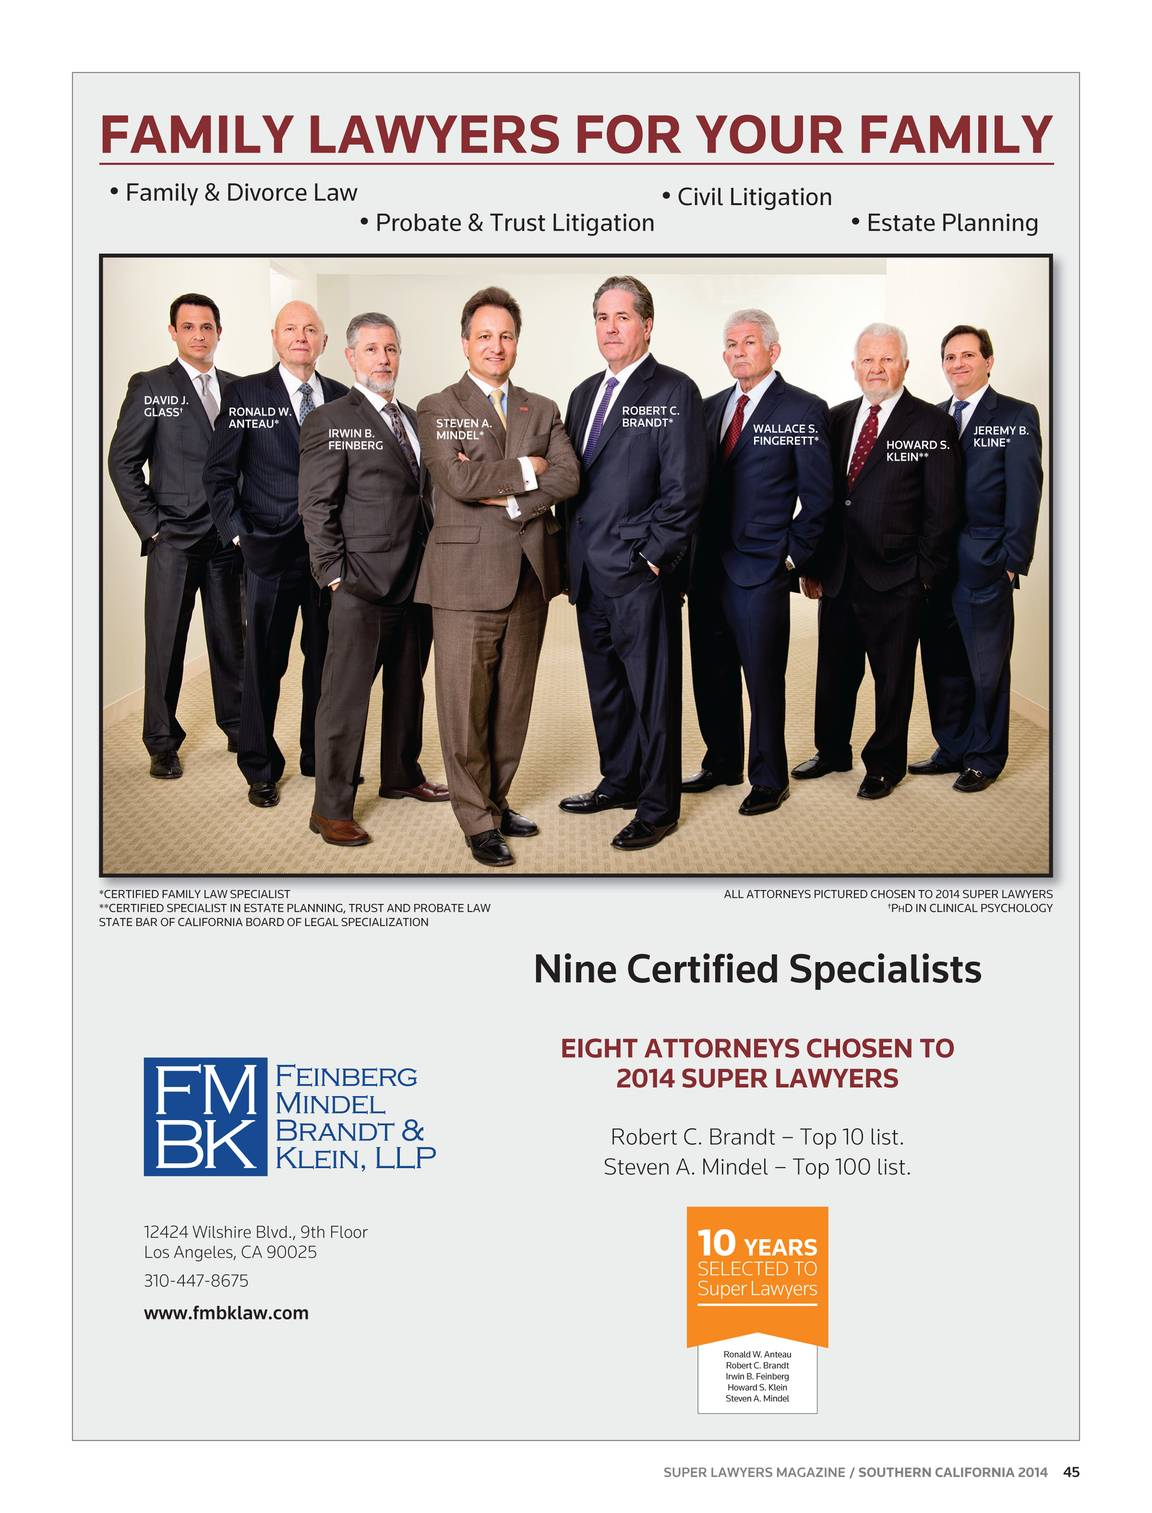 Super Lawyers - Southern California 2014 - page 44